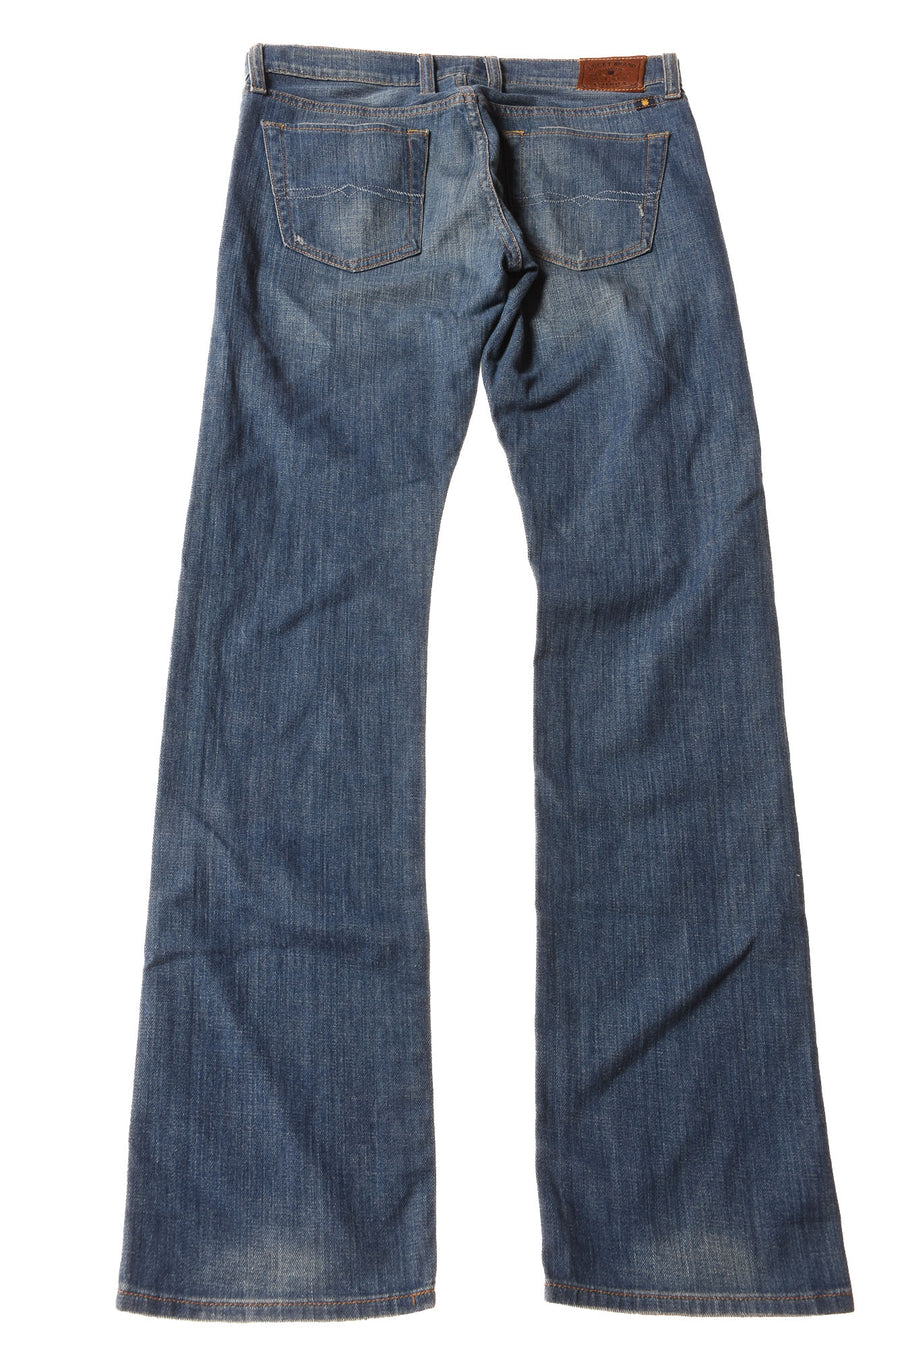 USED Lucky Brand Women's Jeans 4 Blue